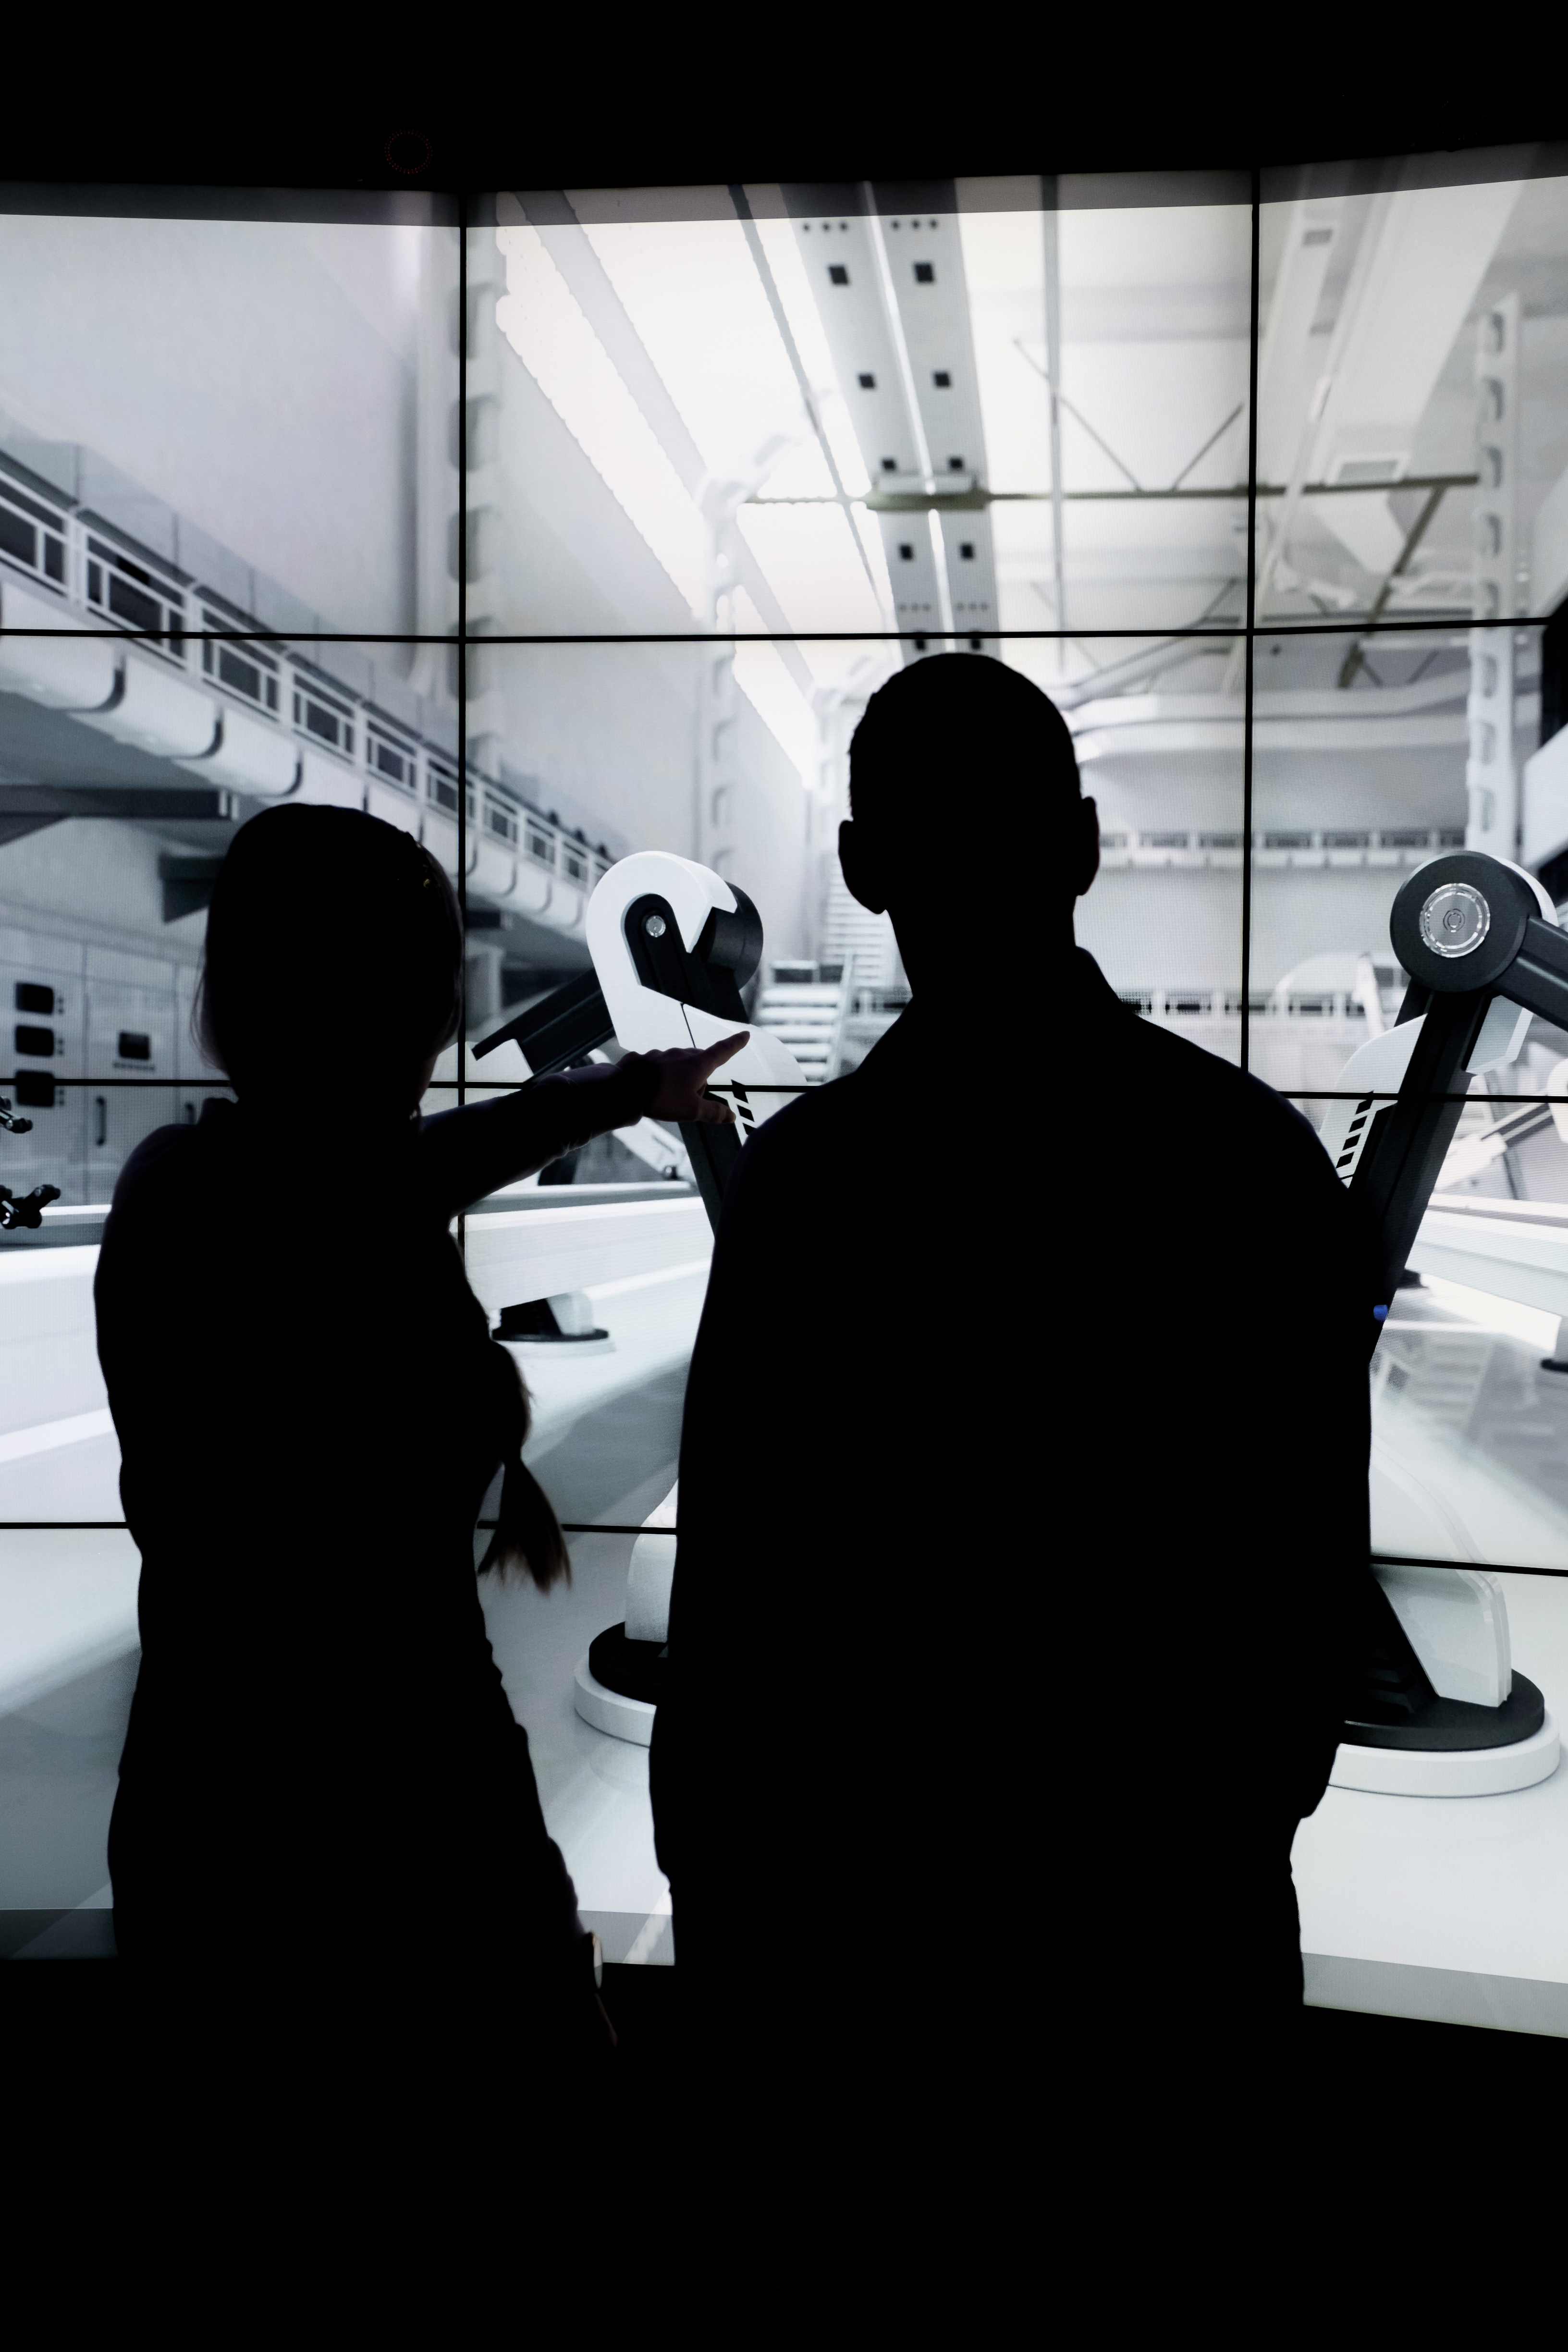 Sillouette of two people infront of screen showing robots in a factory